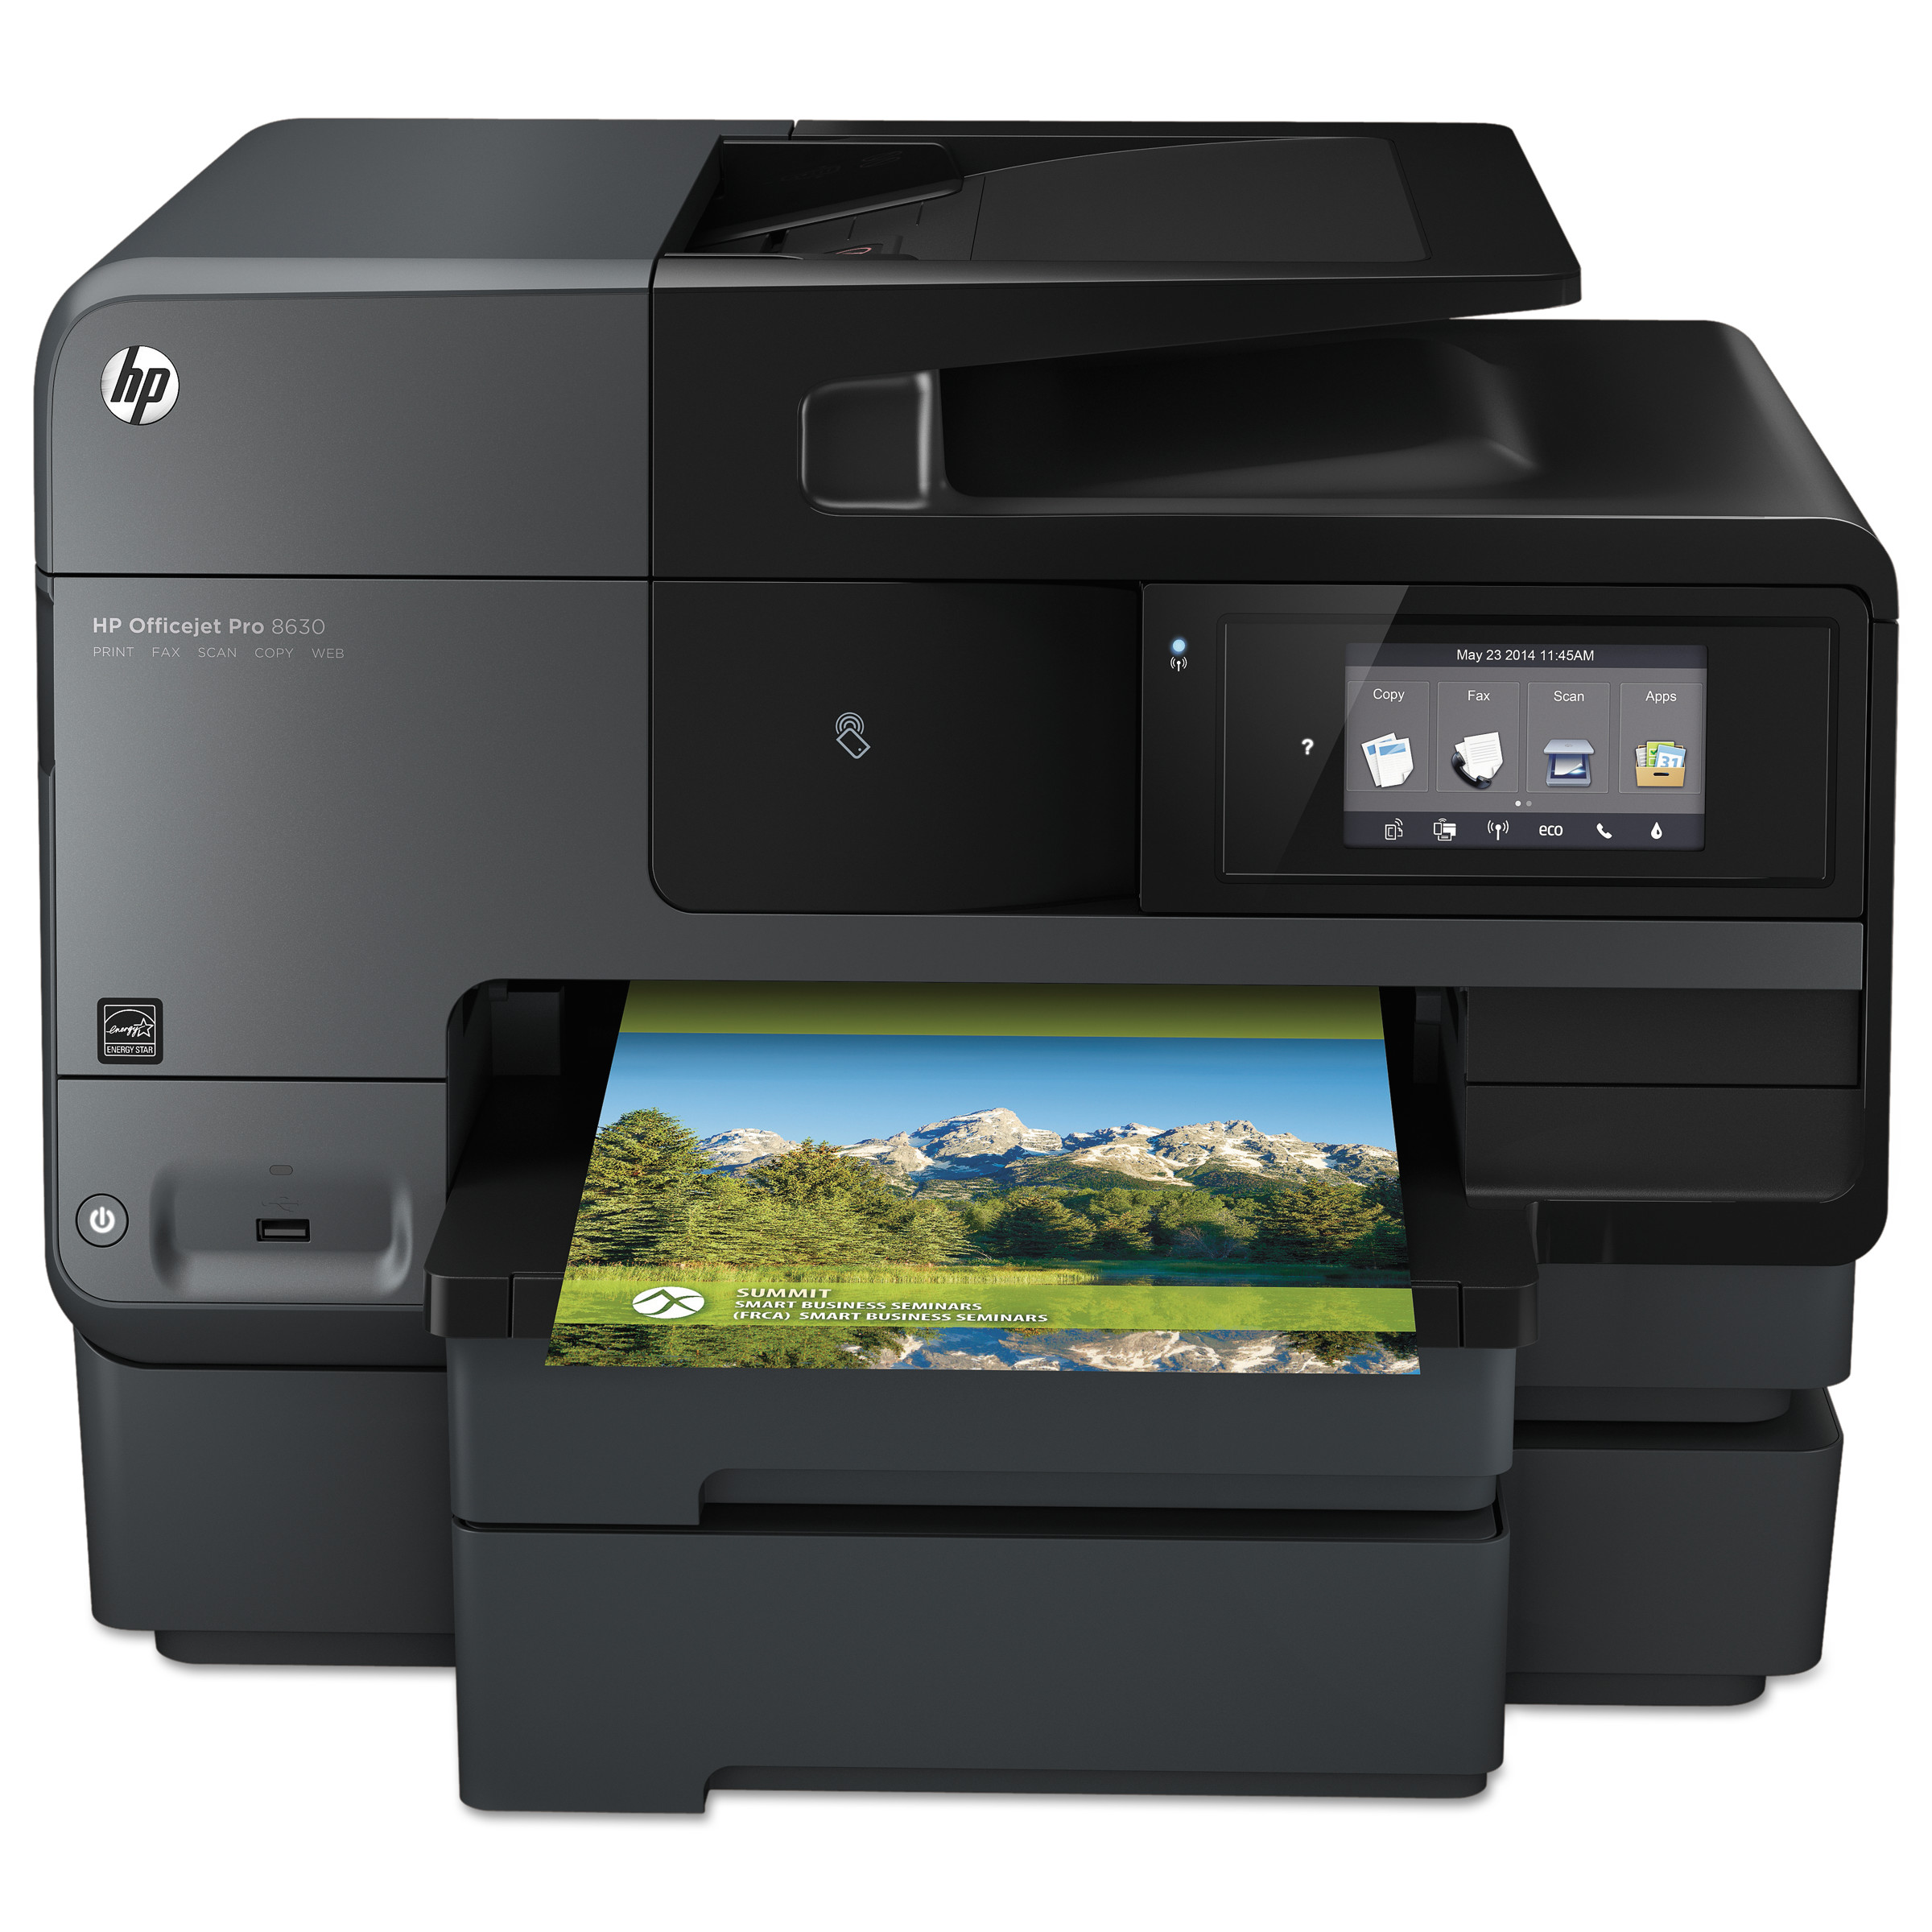 HP Officejet Pro 8630 e-All-in-One Wireless Inkjet Printer, Copy Fax Print Scan by HP